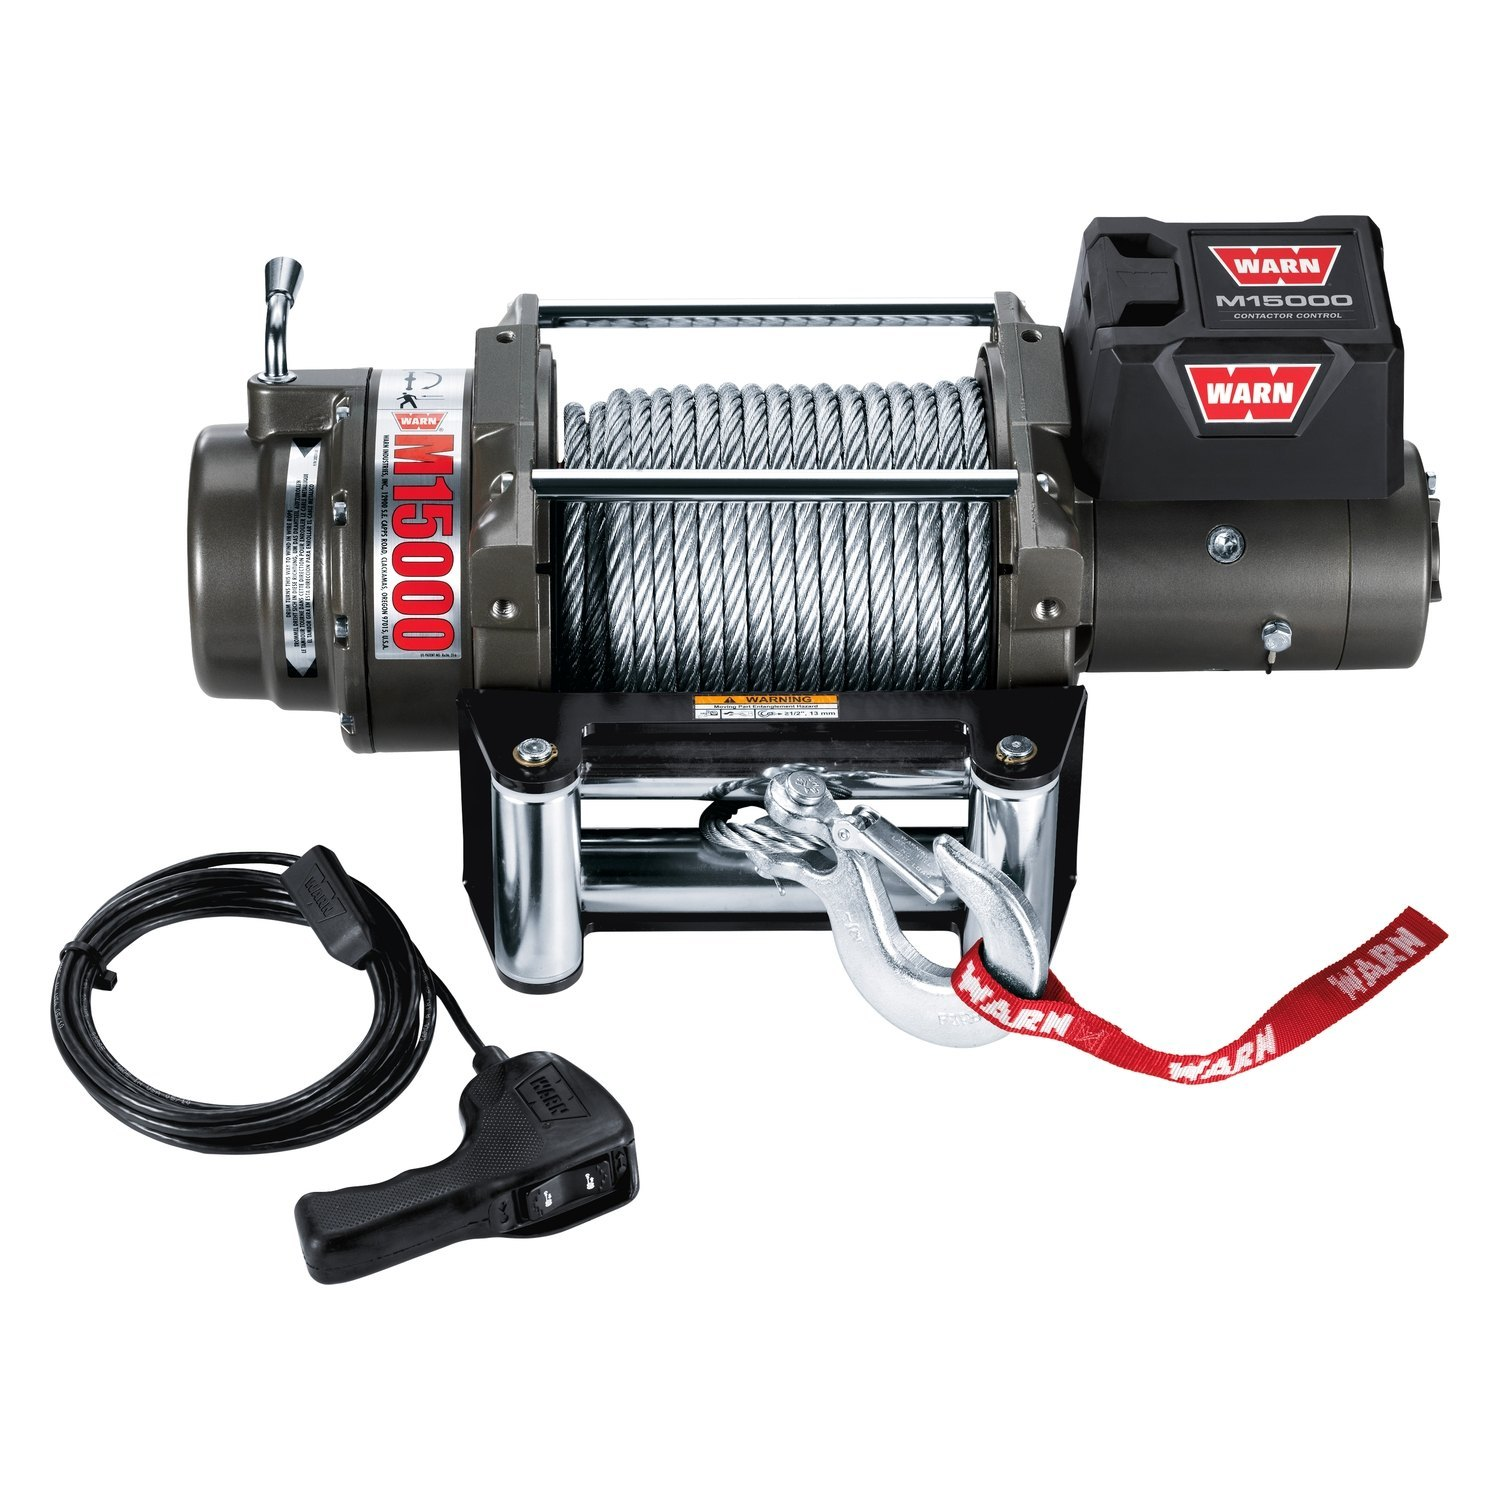 Warn 47801 15000 Lbs M Series Self Recovery Electric Winch With 5 Wire Control Wiring Diagram Rope